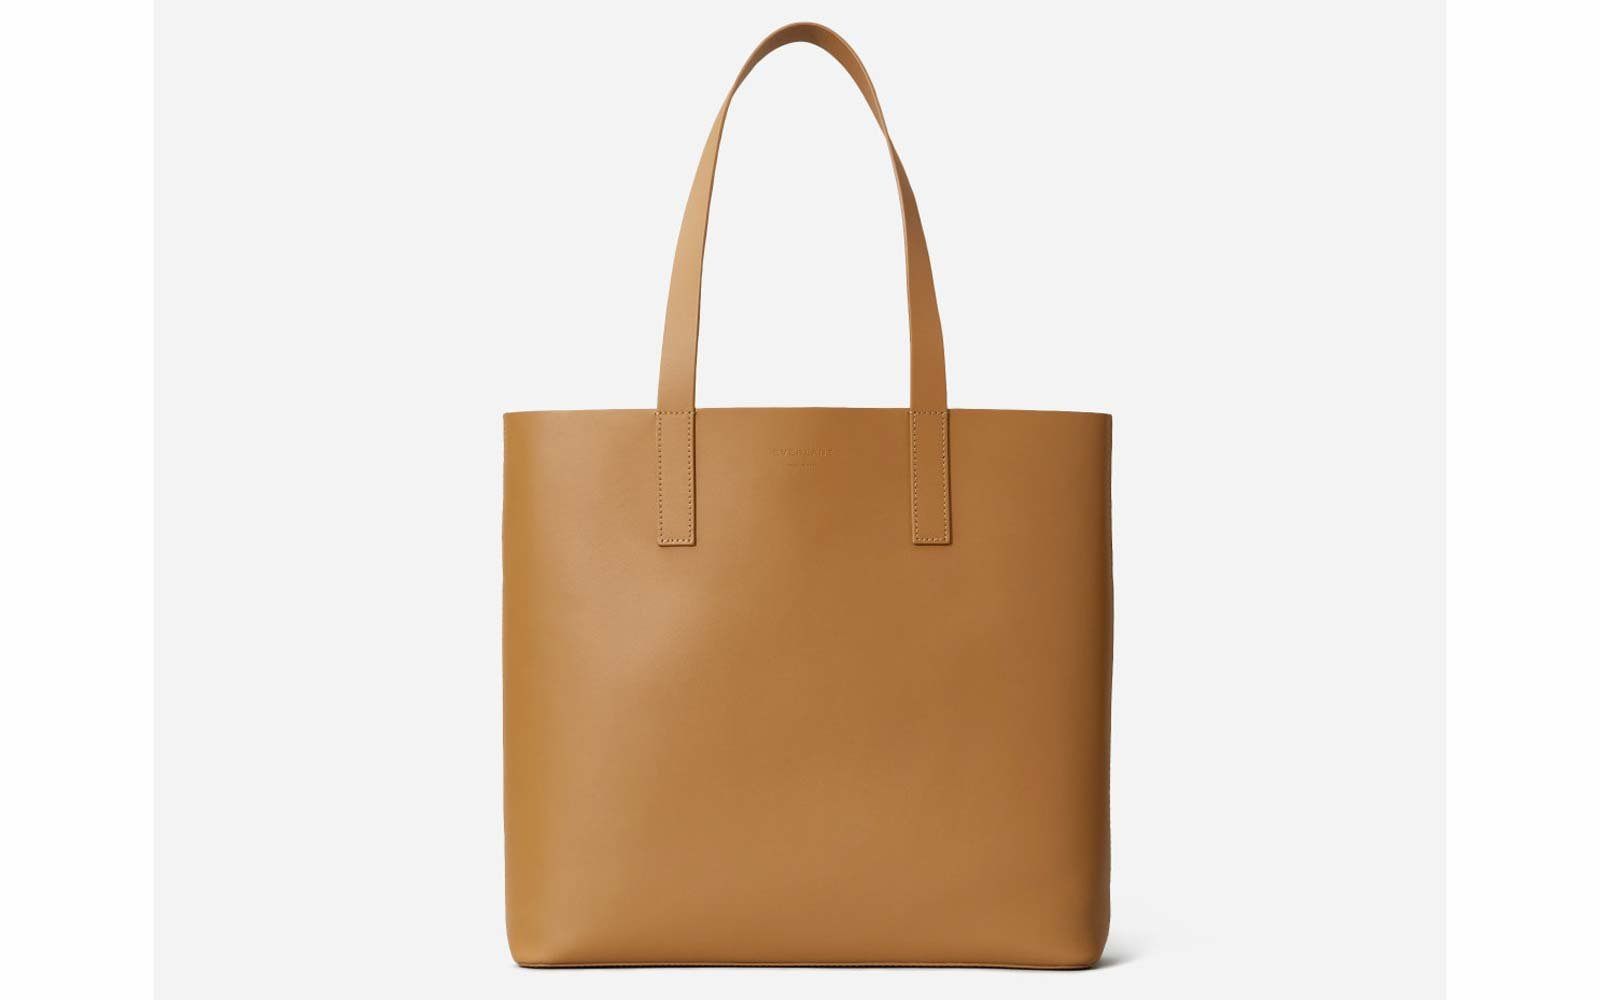 The Day Square Tote in Saddle